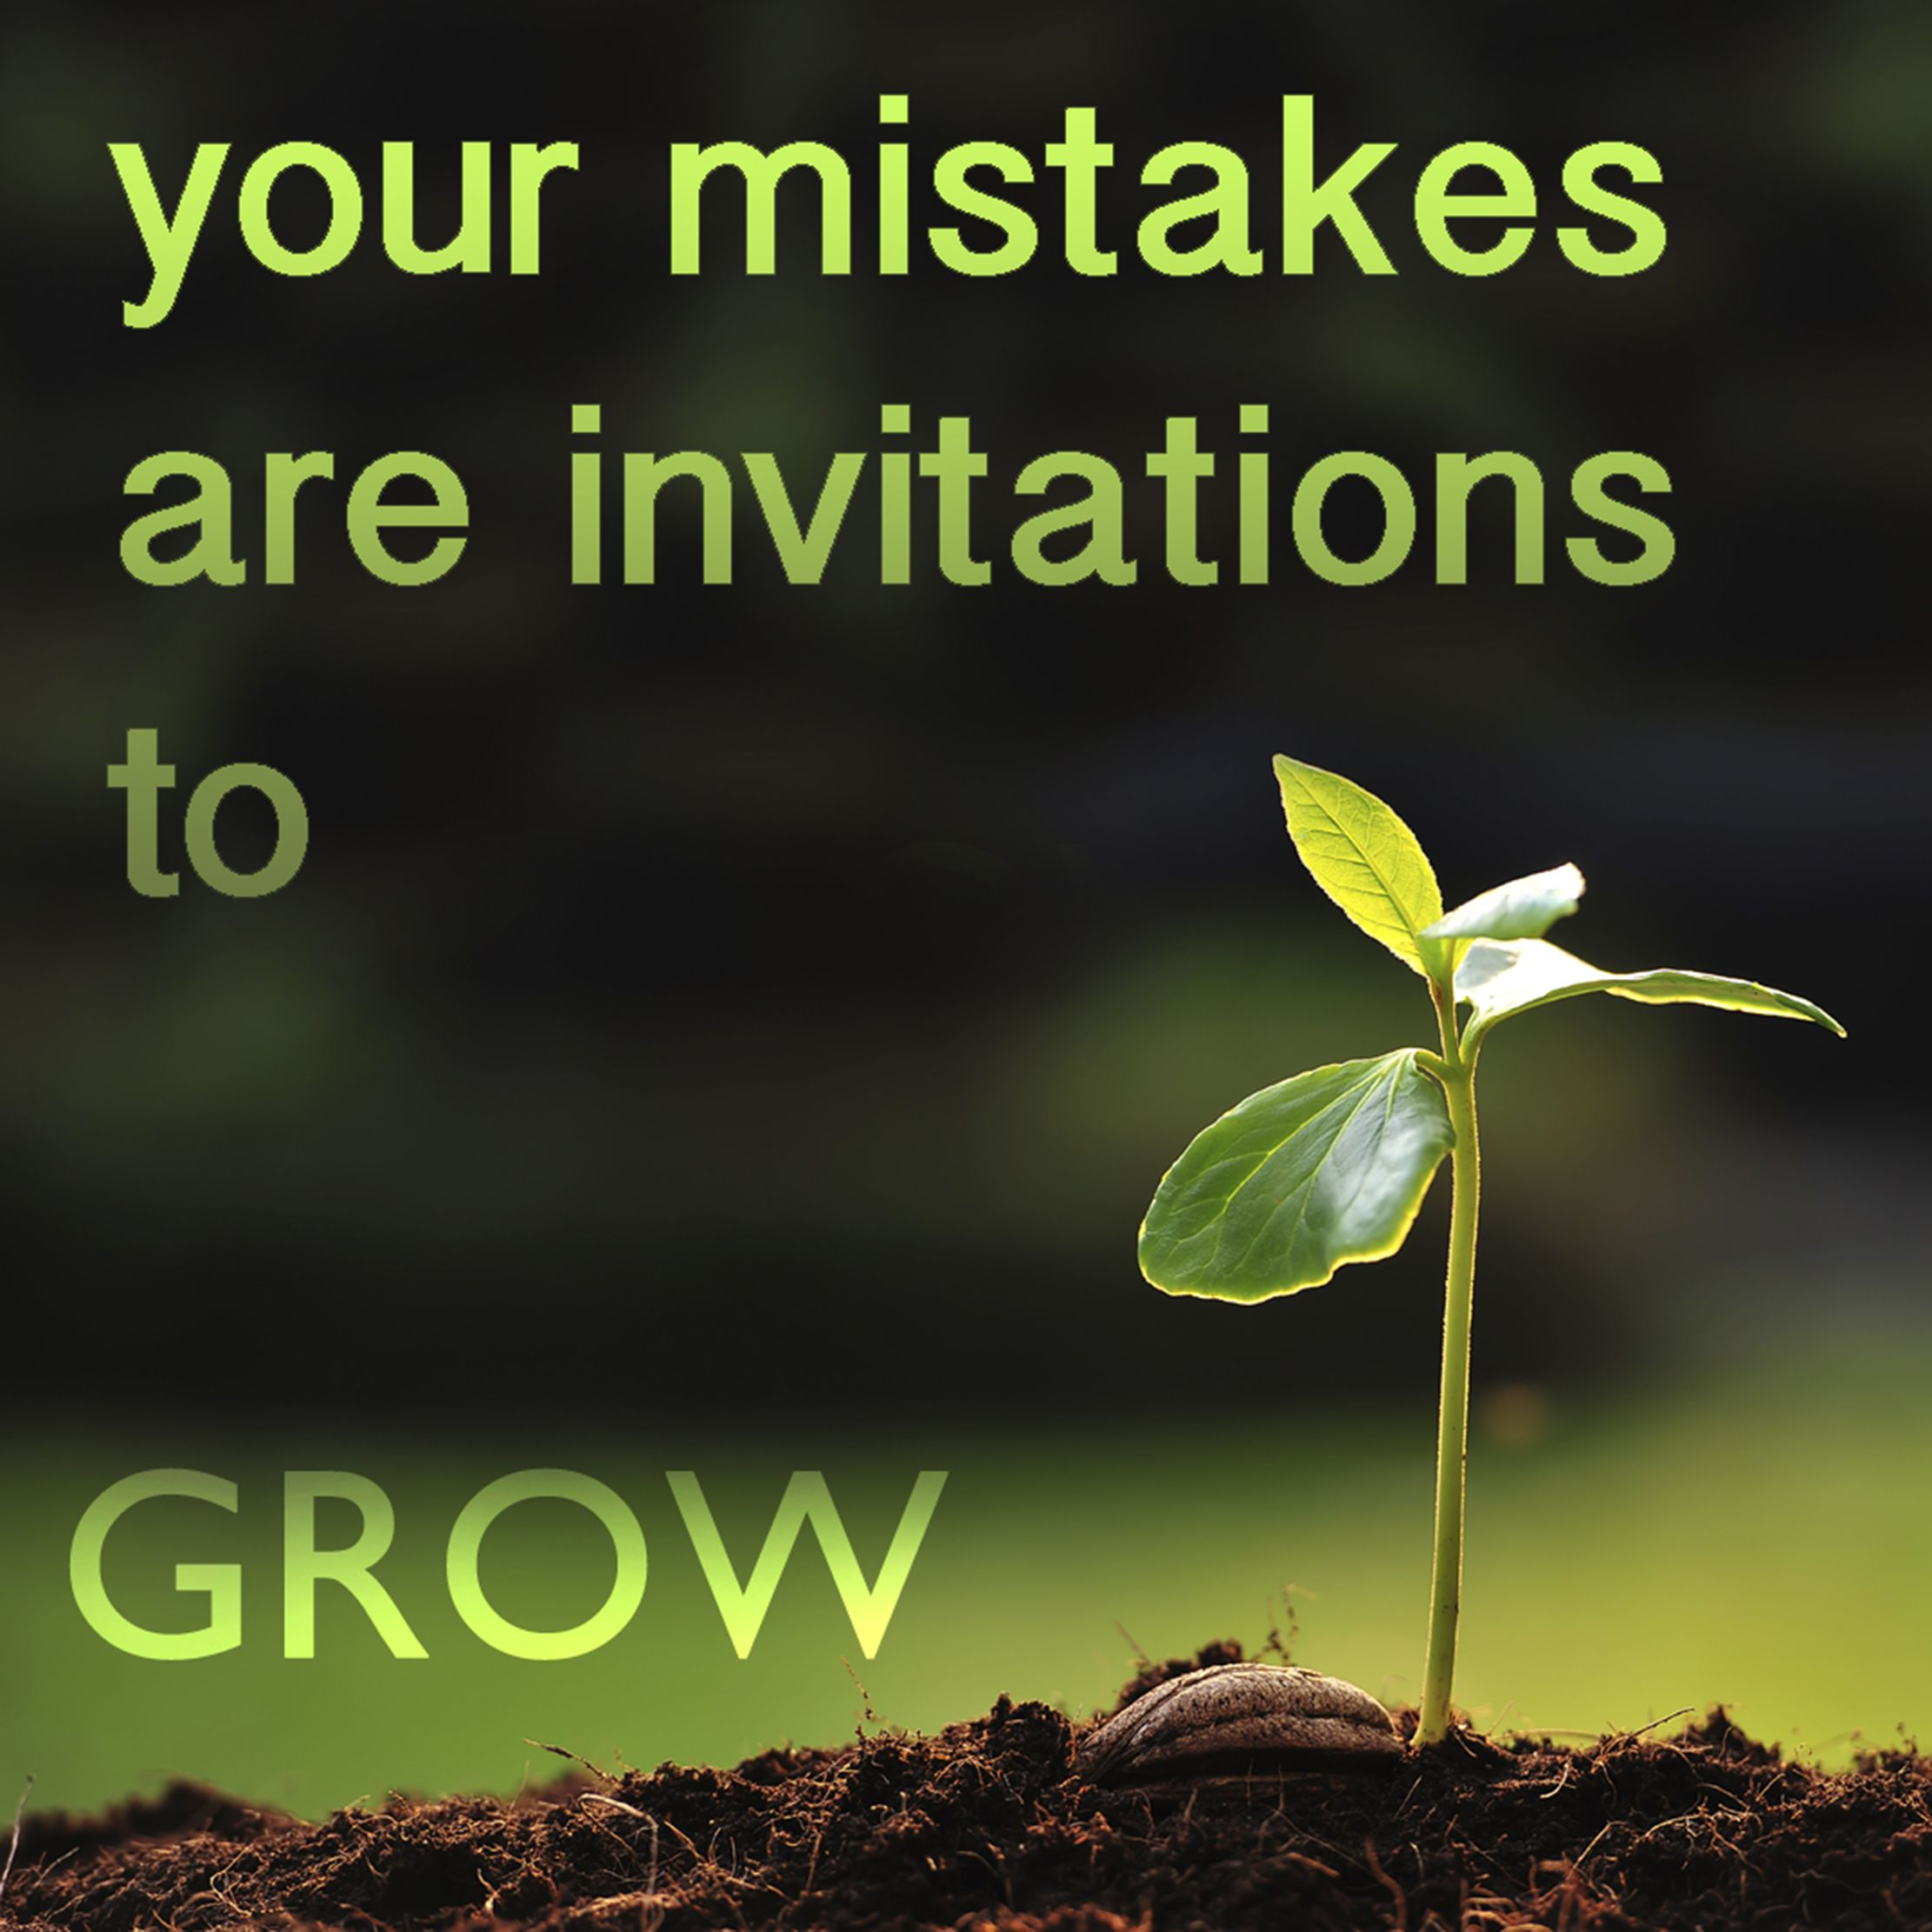 your mistakes are invitations to grow